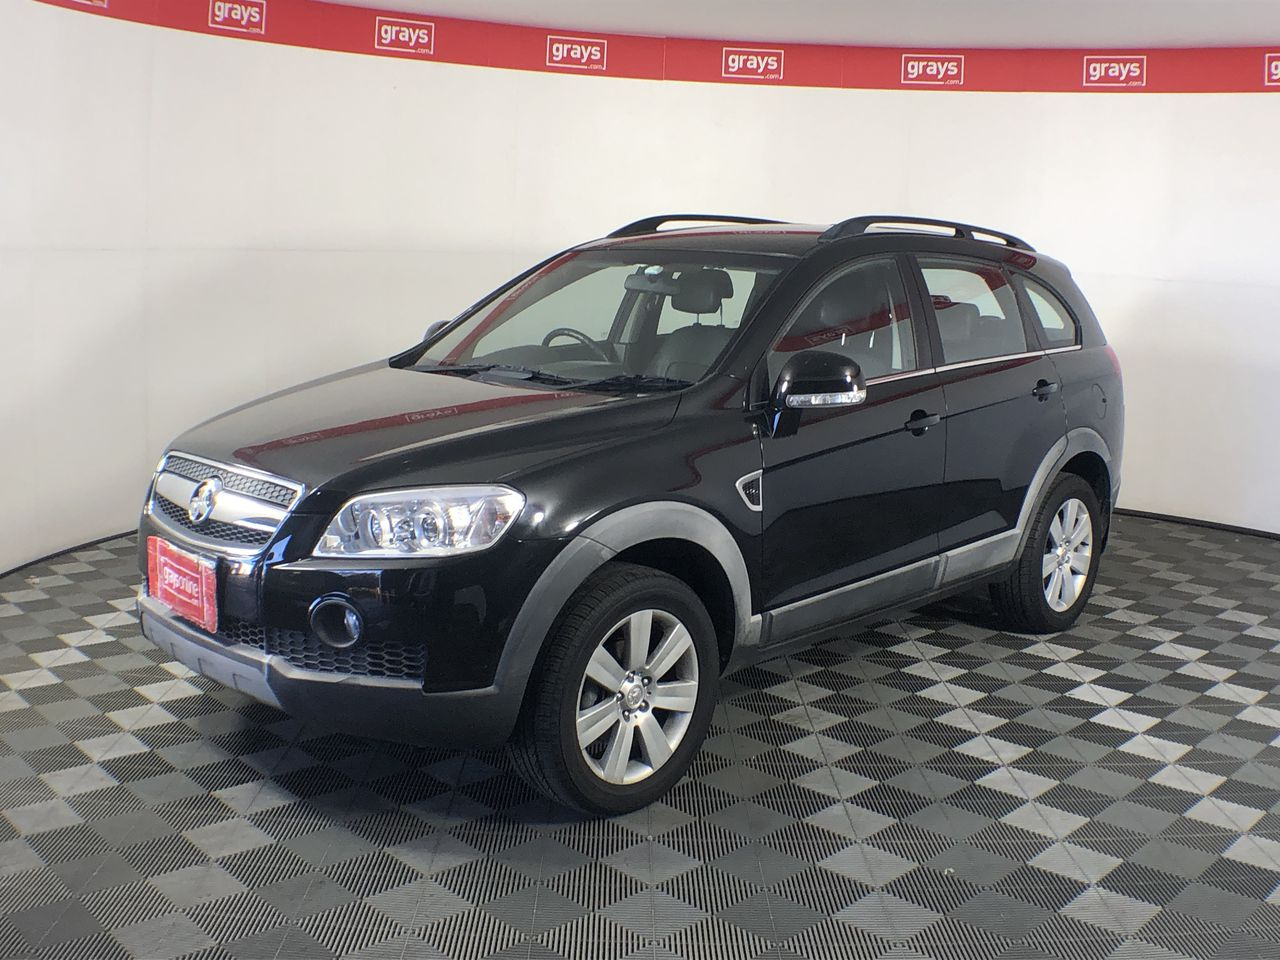 2007 Holden Captiva LX (4x4) CG Automatic 7 Seats Wagon